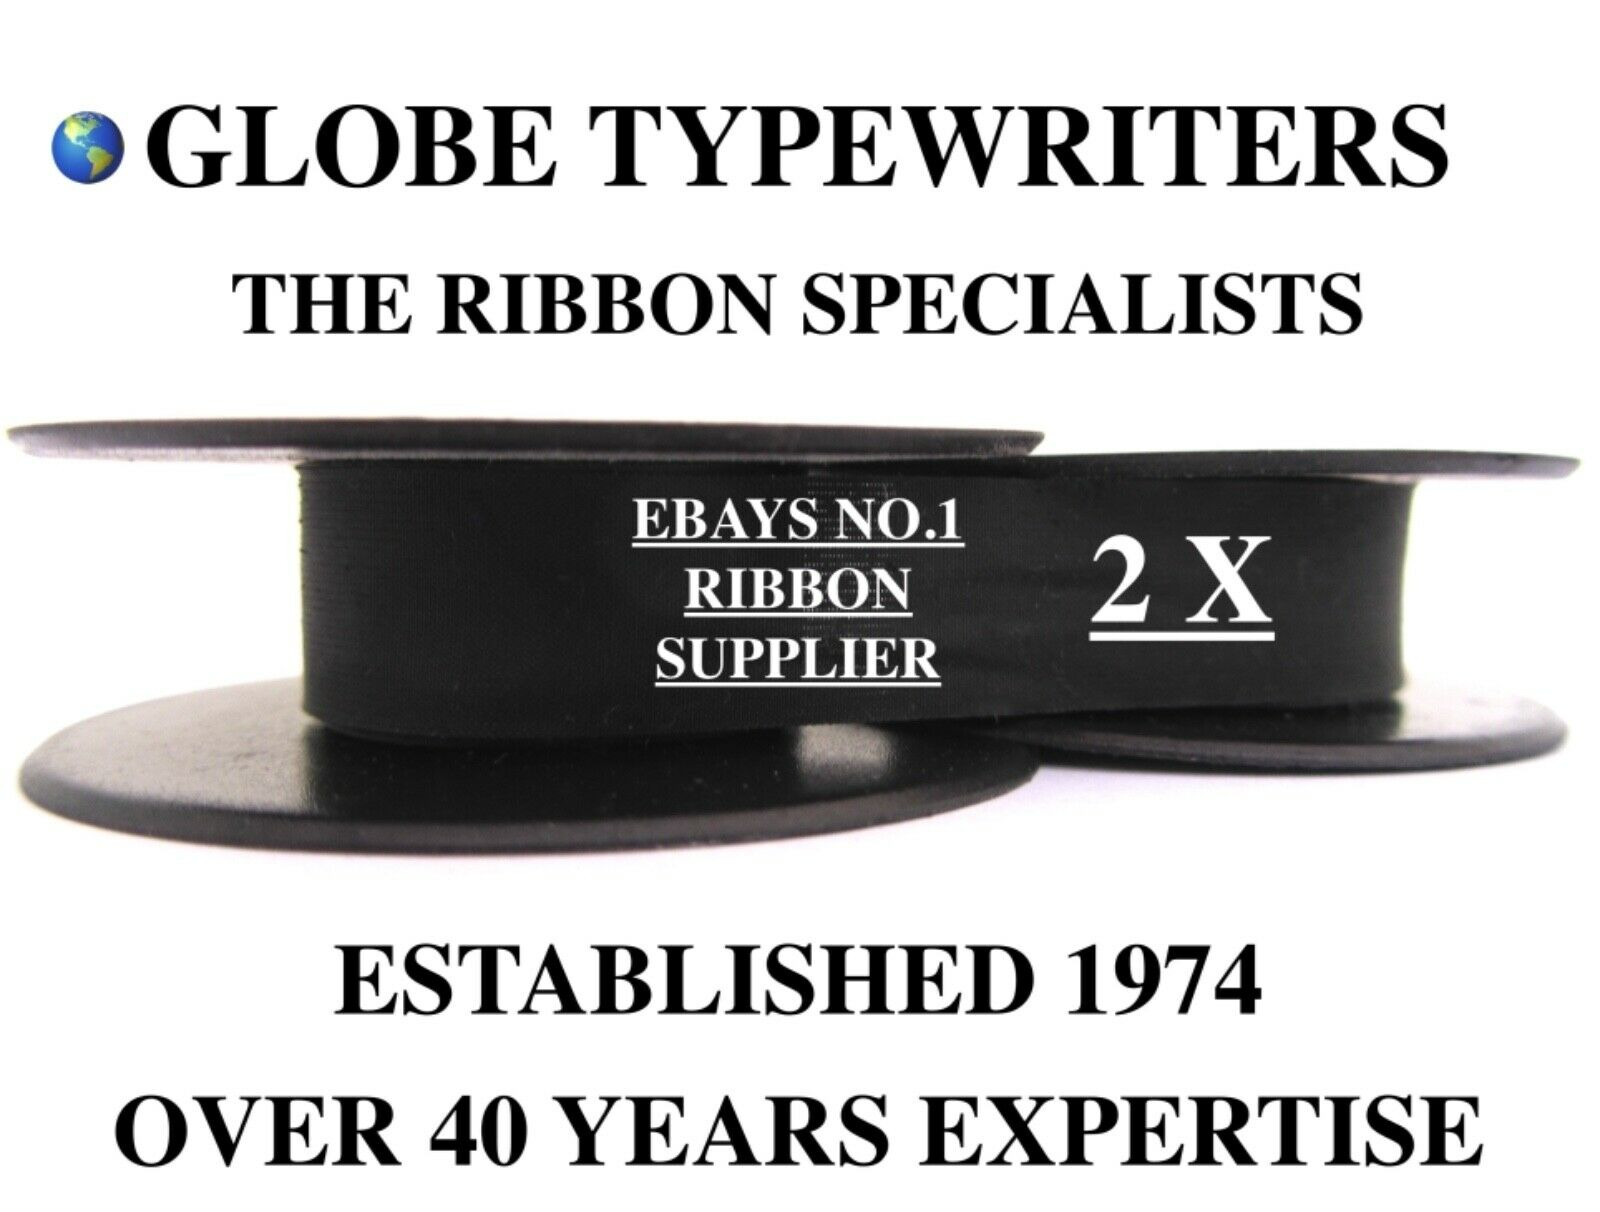 2 x SILVER REED LEADER I & II *BLACK* TOP QUALITY *10 METRE* TYPEWRITER RIBBONS